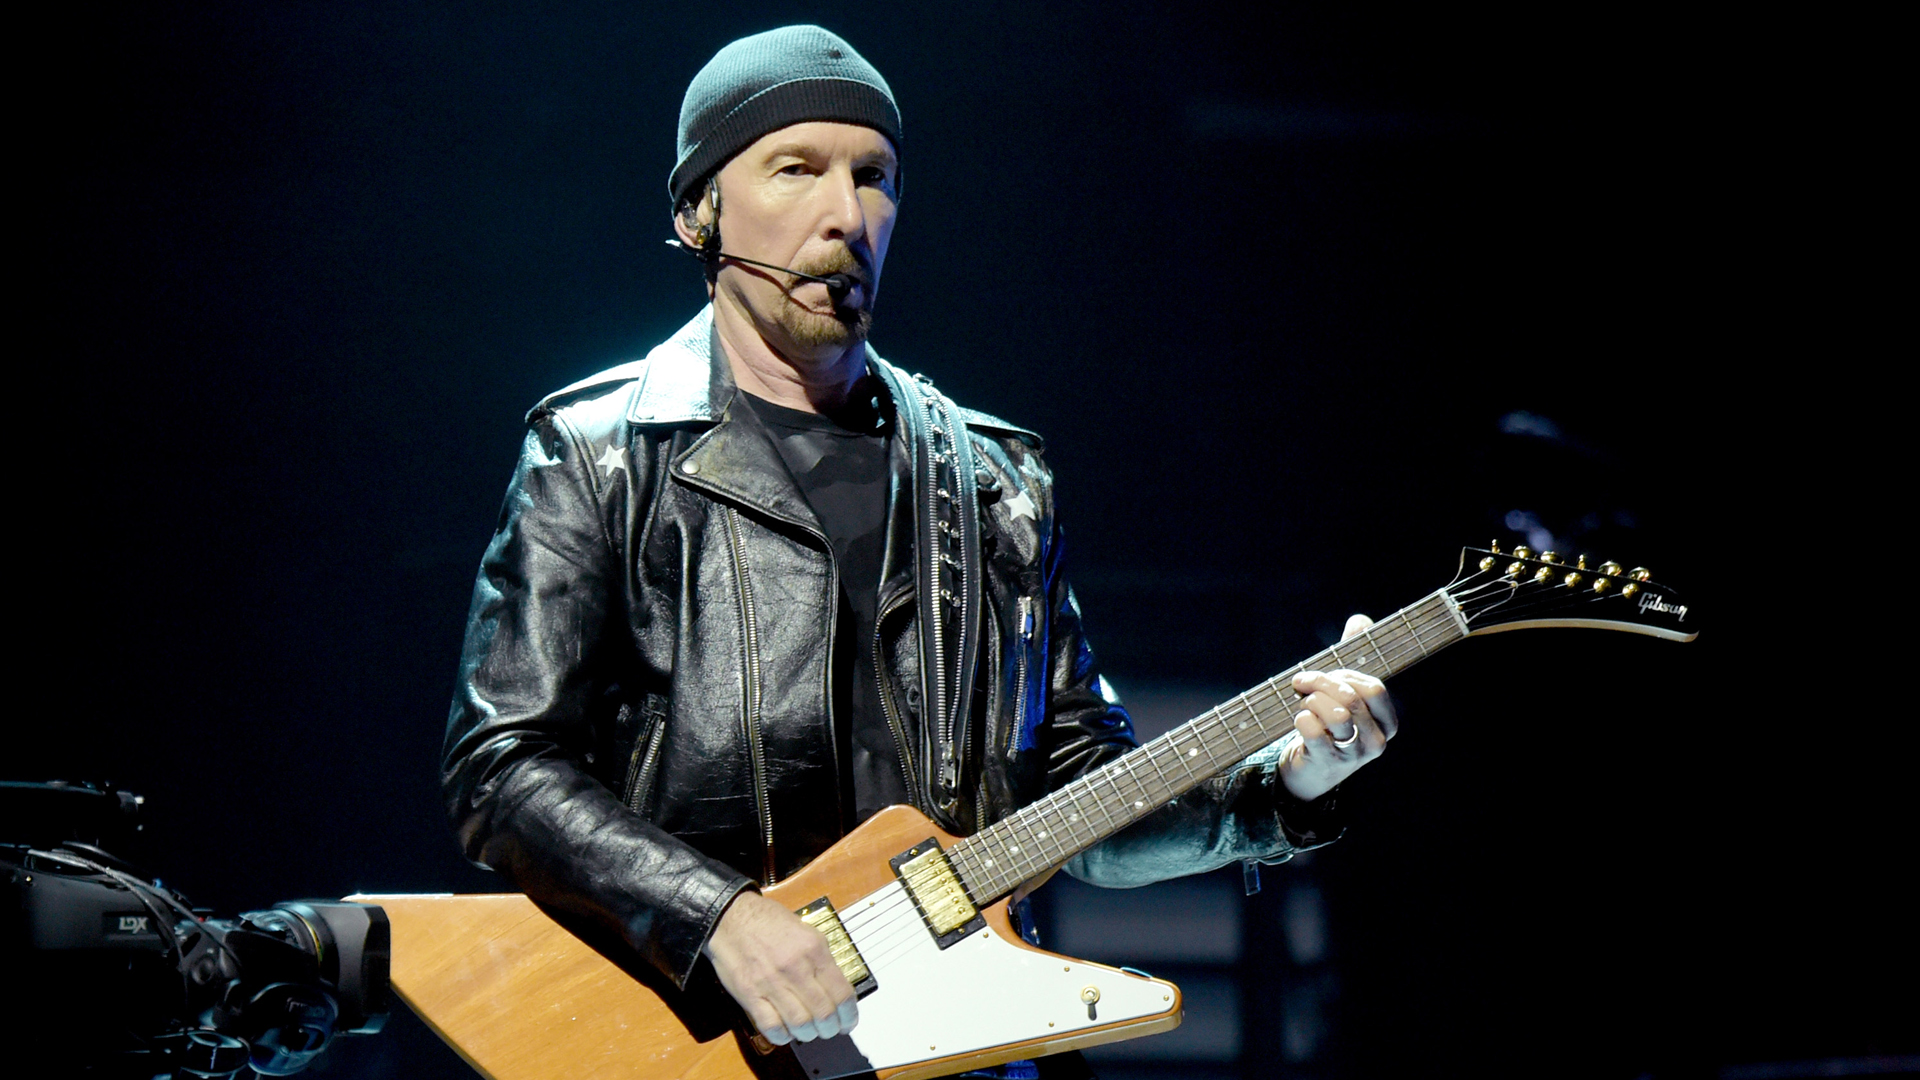 The Edge of U2 performs at The Forum on May 16, 2018 in Inglewood. (Credit: Kevin Winter/Getty Images)